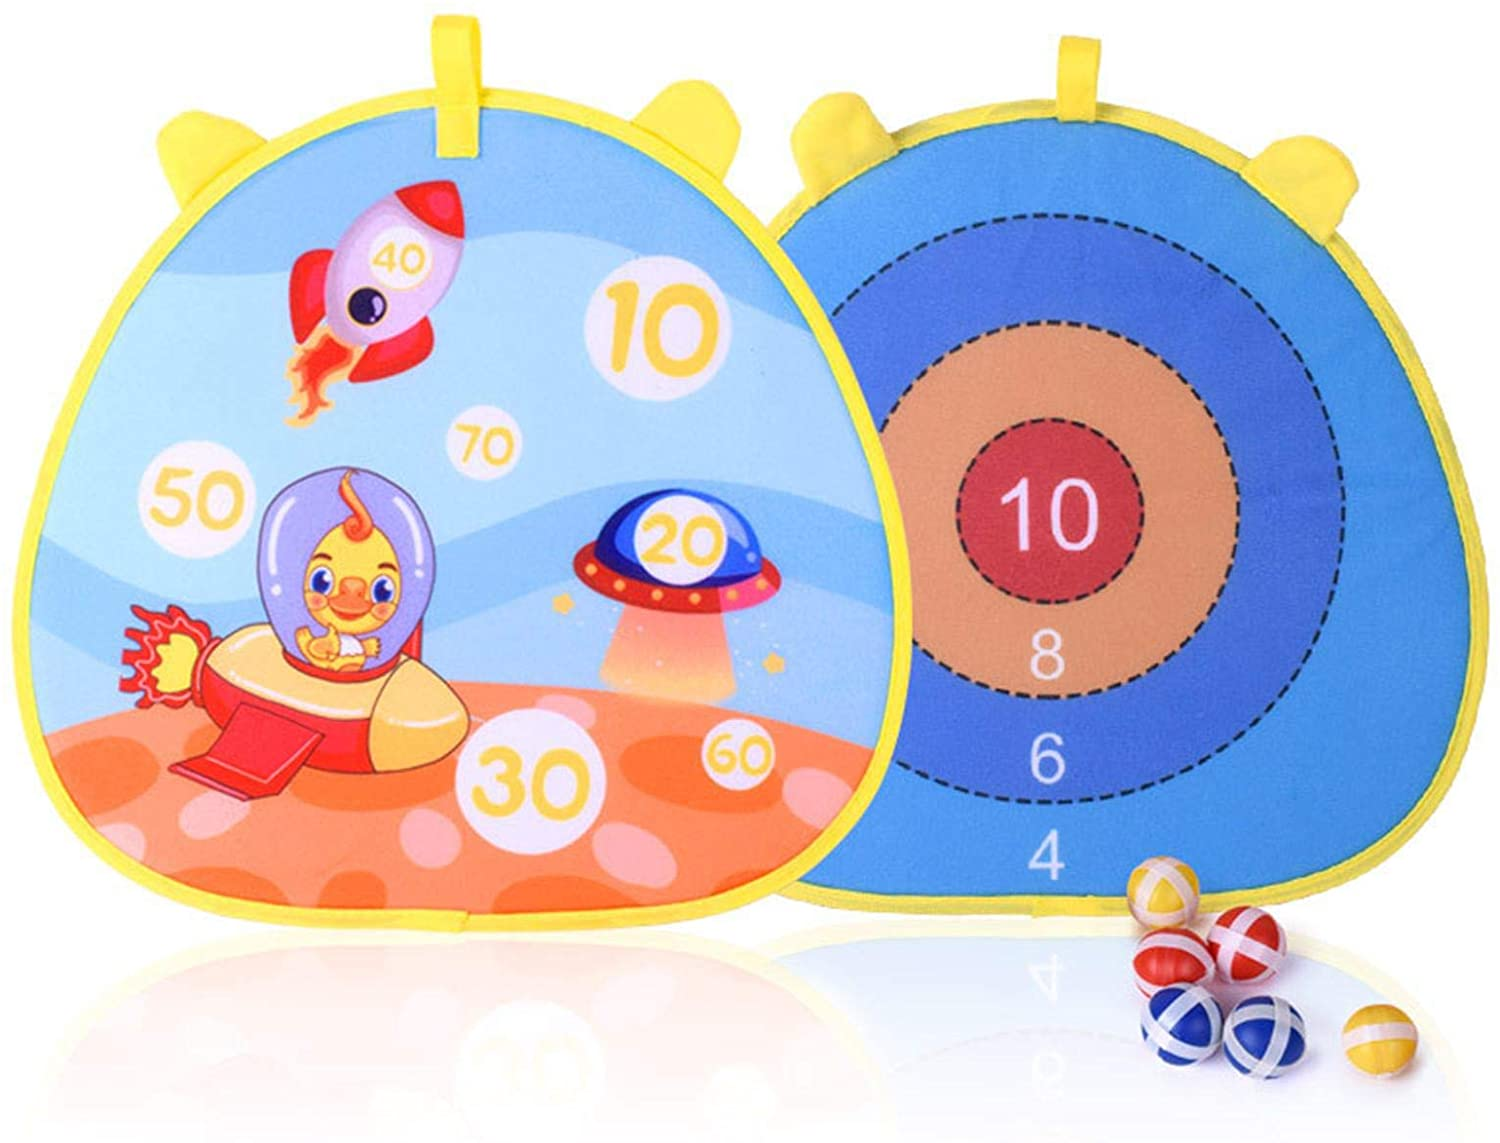 nicything Dart Board Game for Kids with 6 Sticky Balls, Safe Classic Double-Sided Dartboard Set, Christmas Birthday Dart Games Gift for Boys and Girls Indoor Outdoor Classic Games